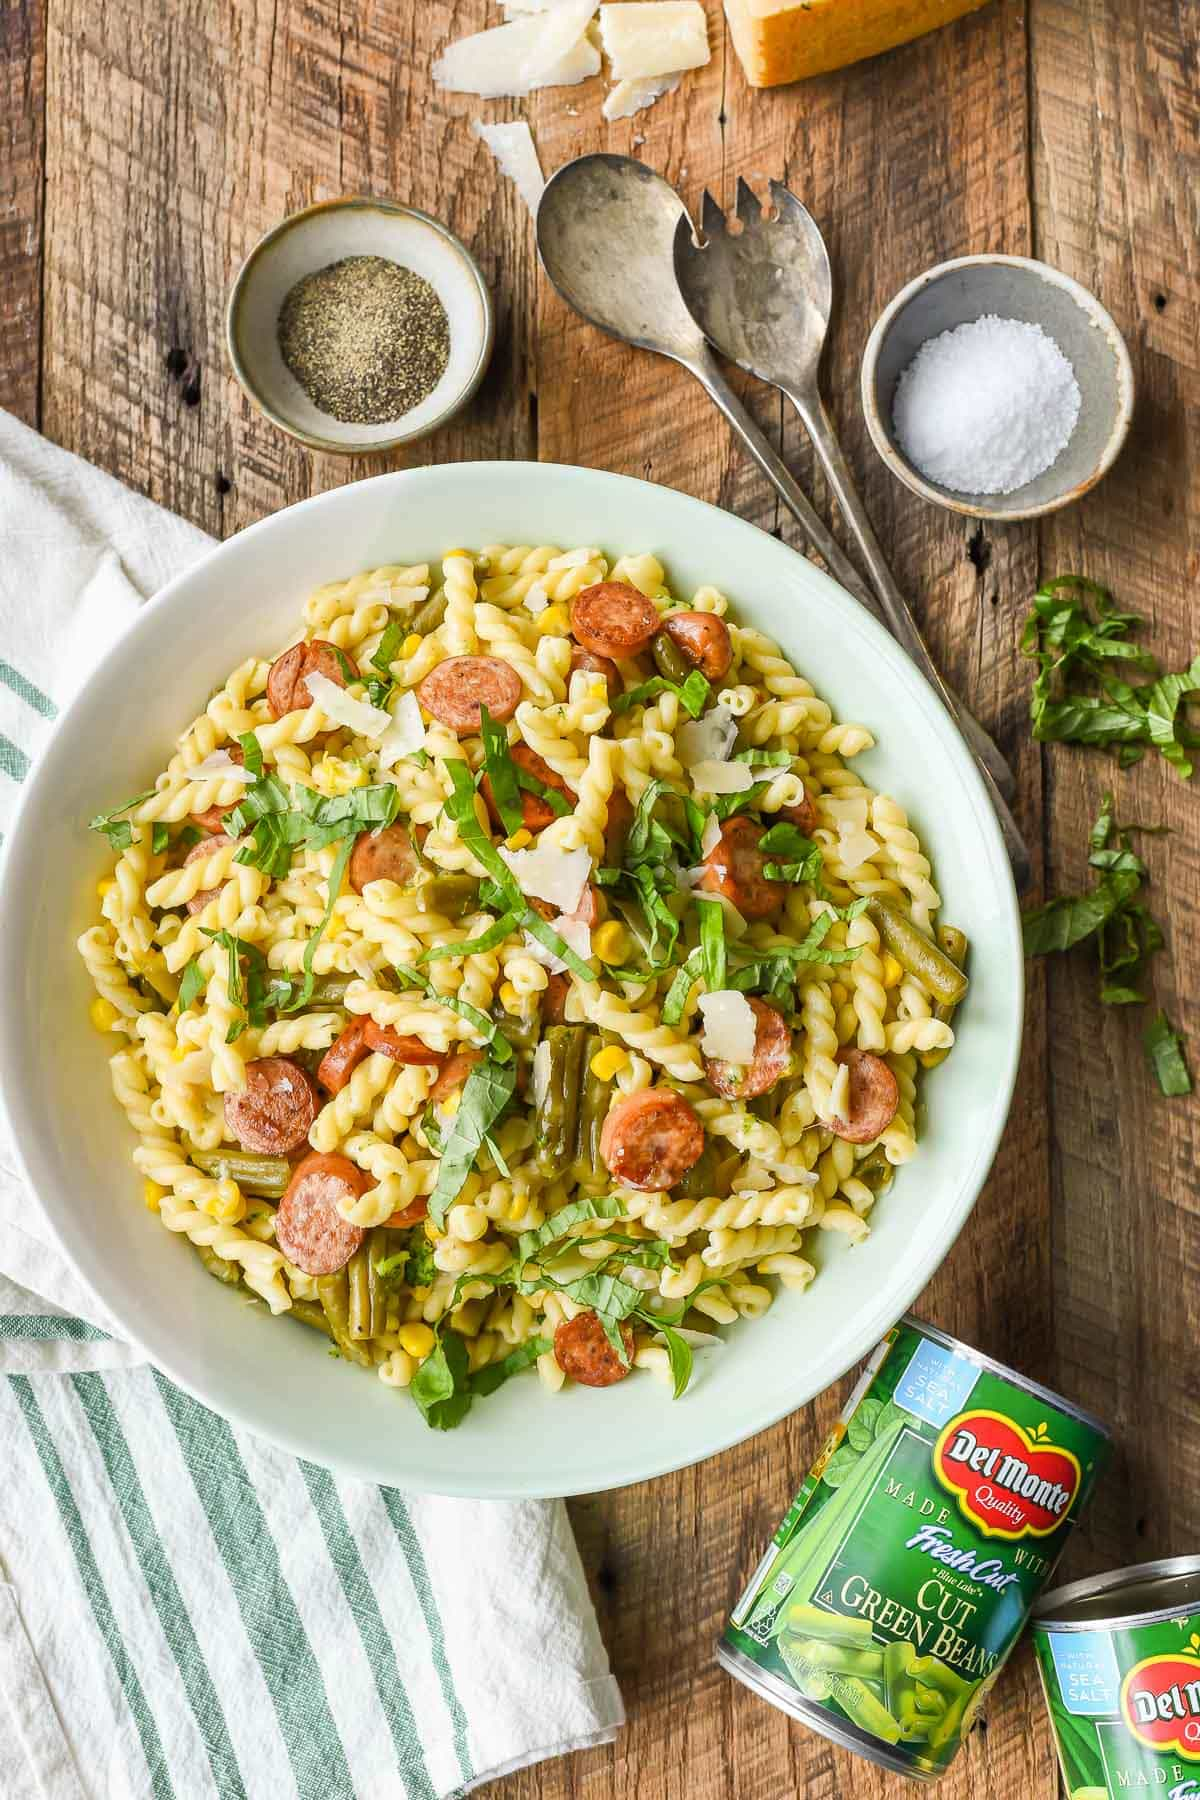 Made in under 30 minutes, this Easy Parmesan Pasta is loaded with chicken sausage and veggies.